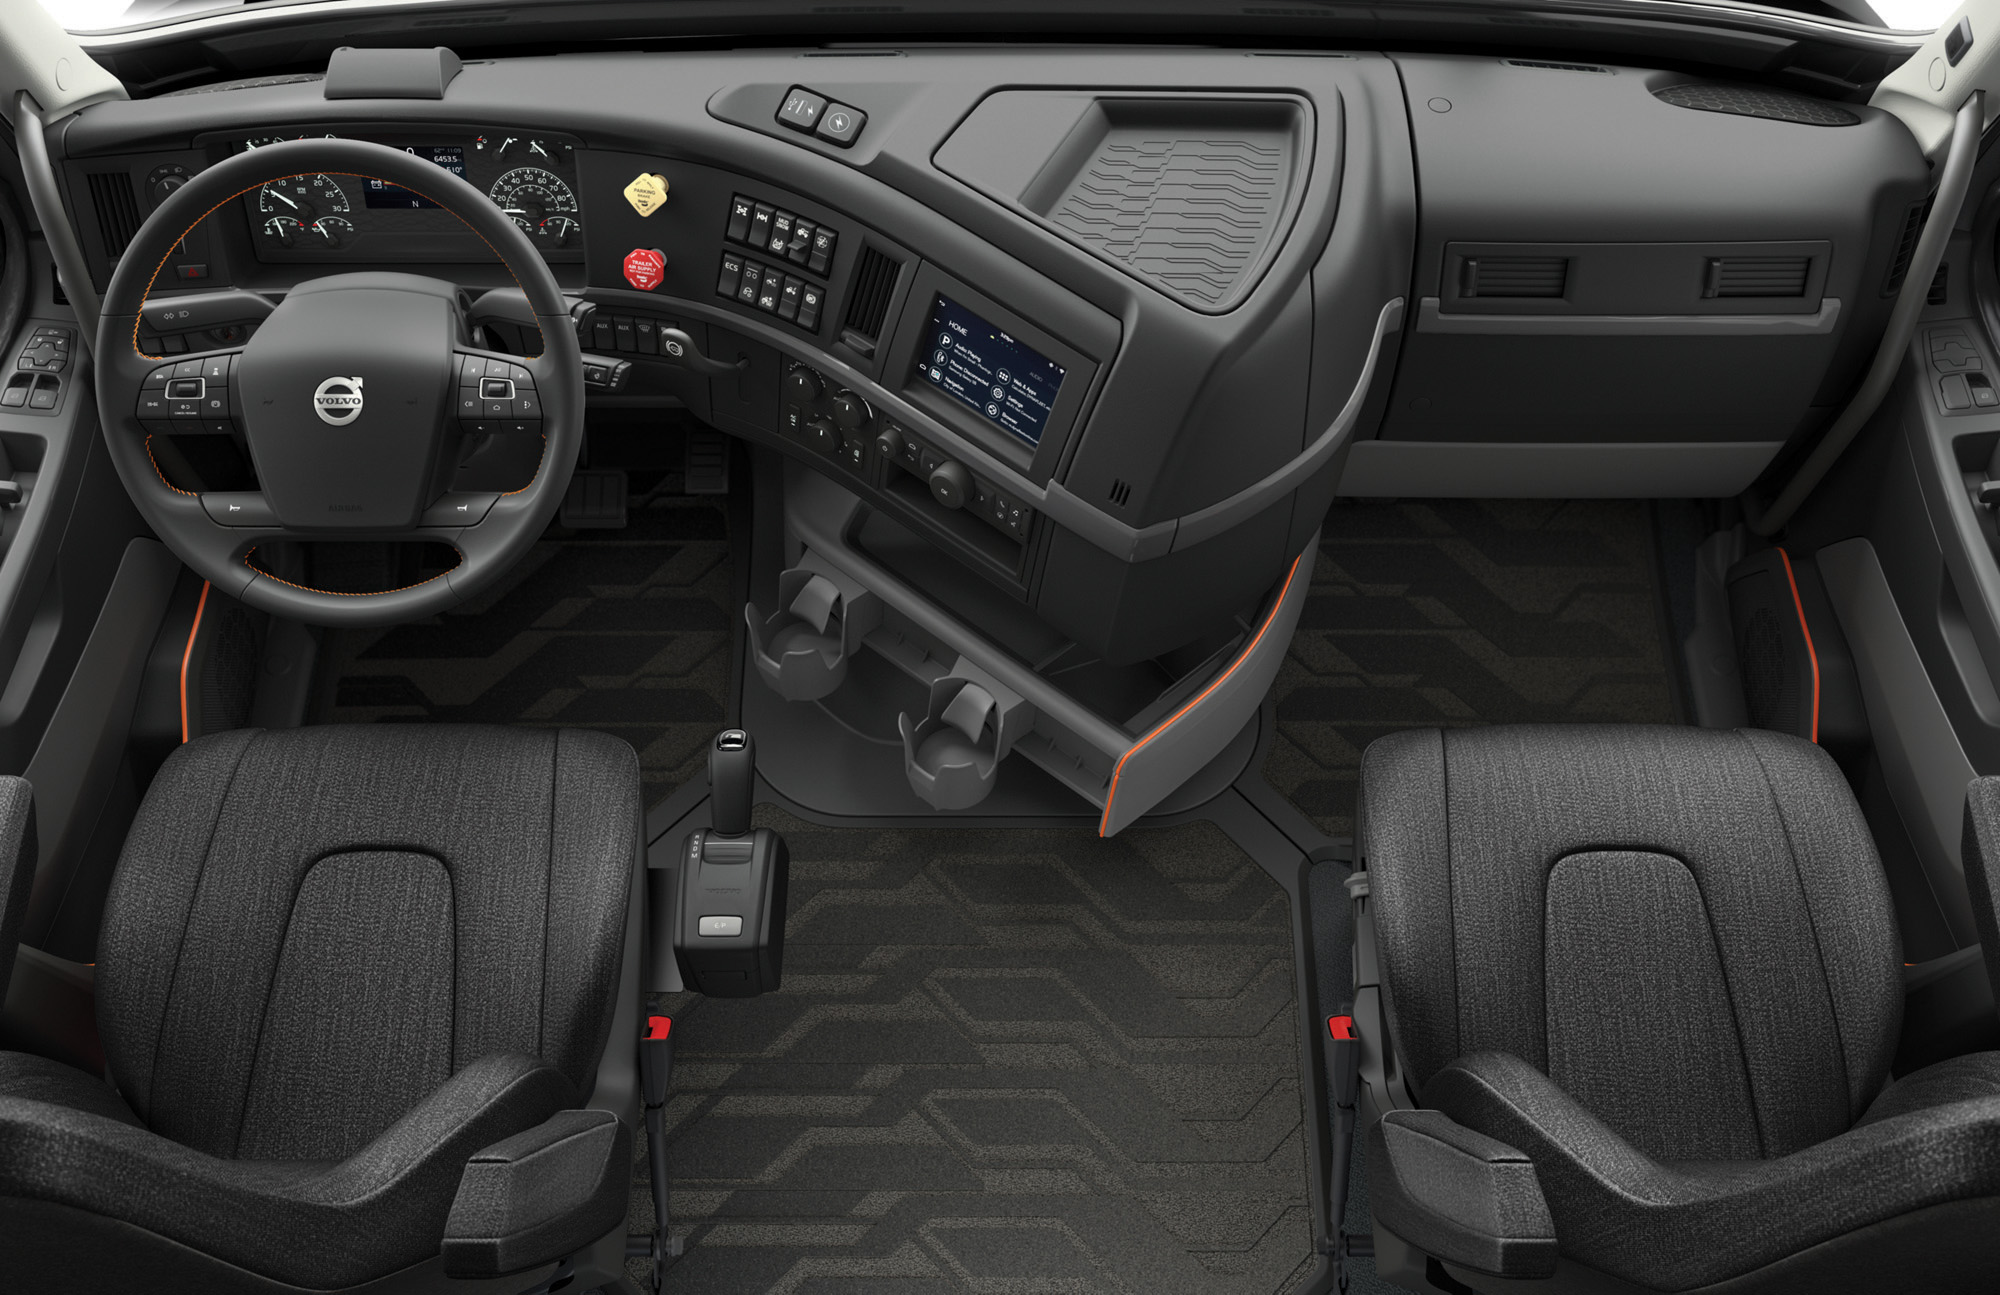 Driving the new Volvo VNR - Truck News